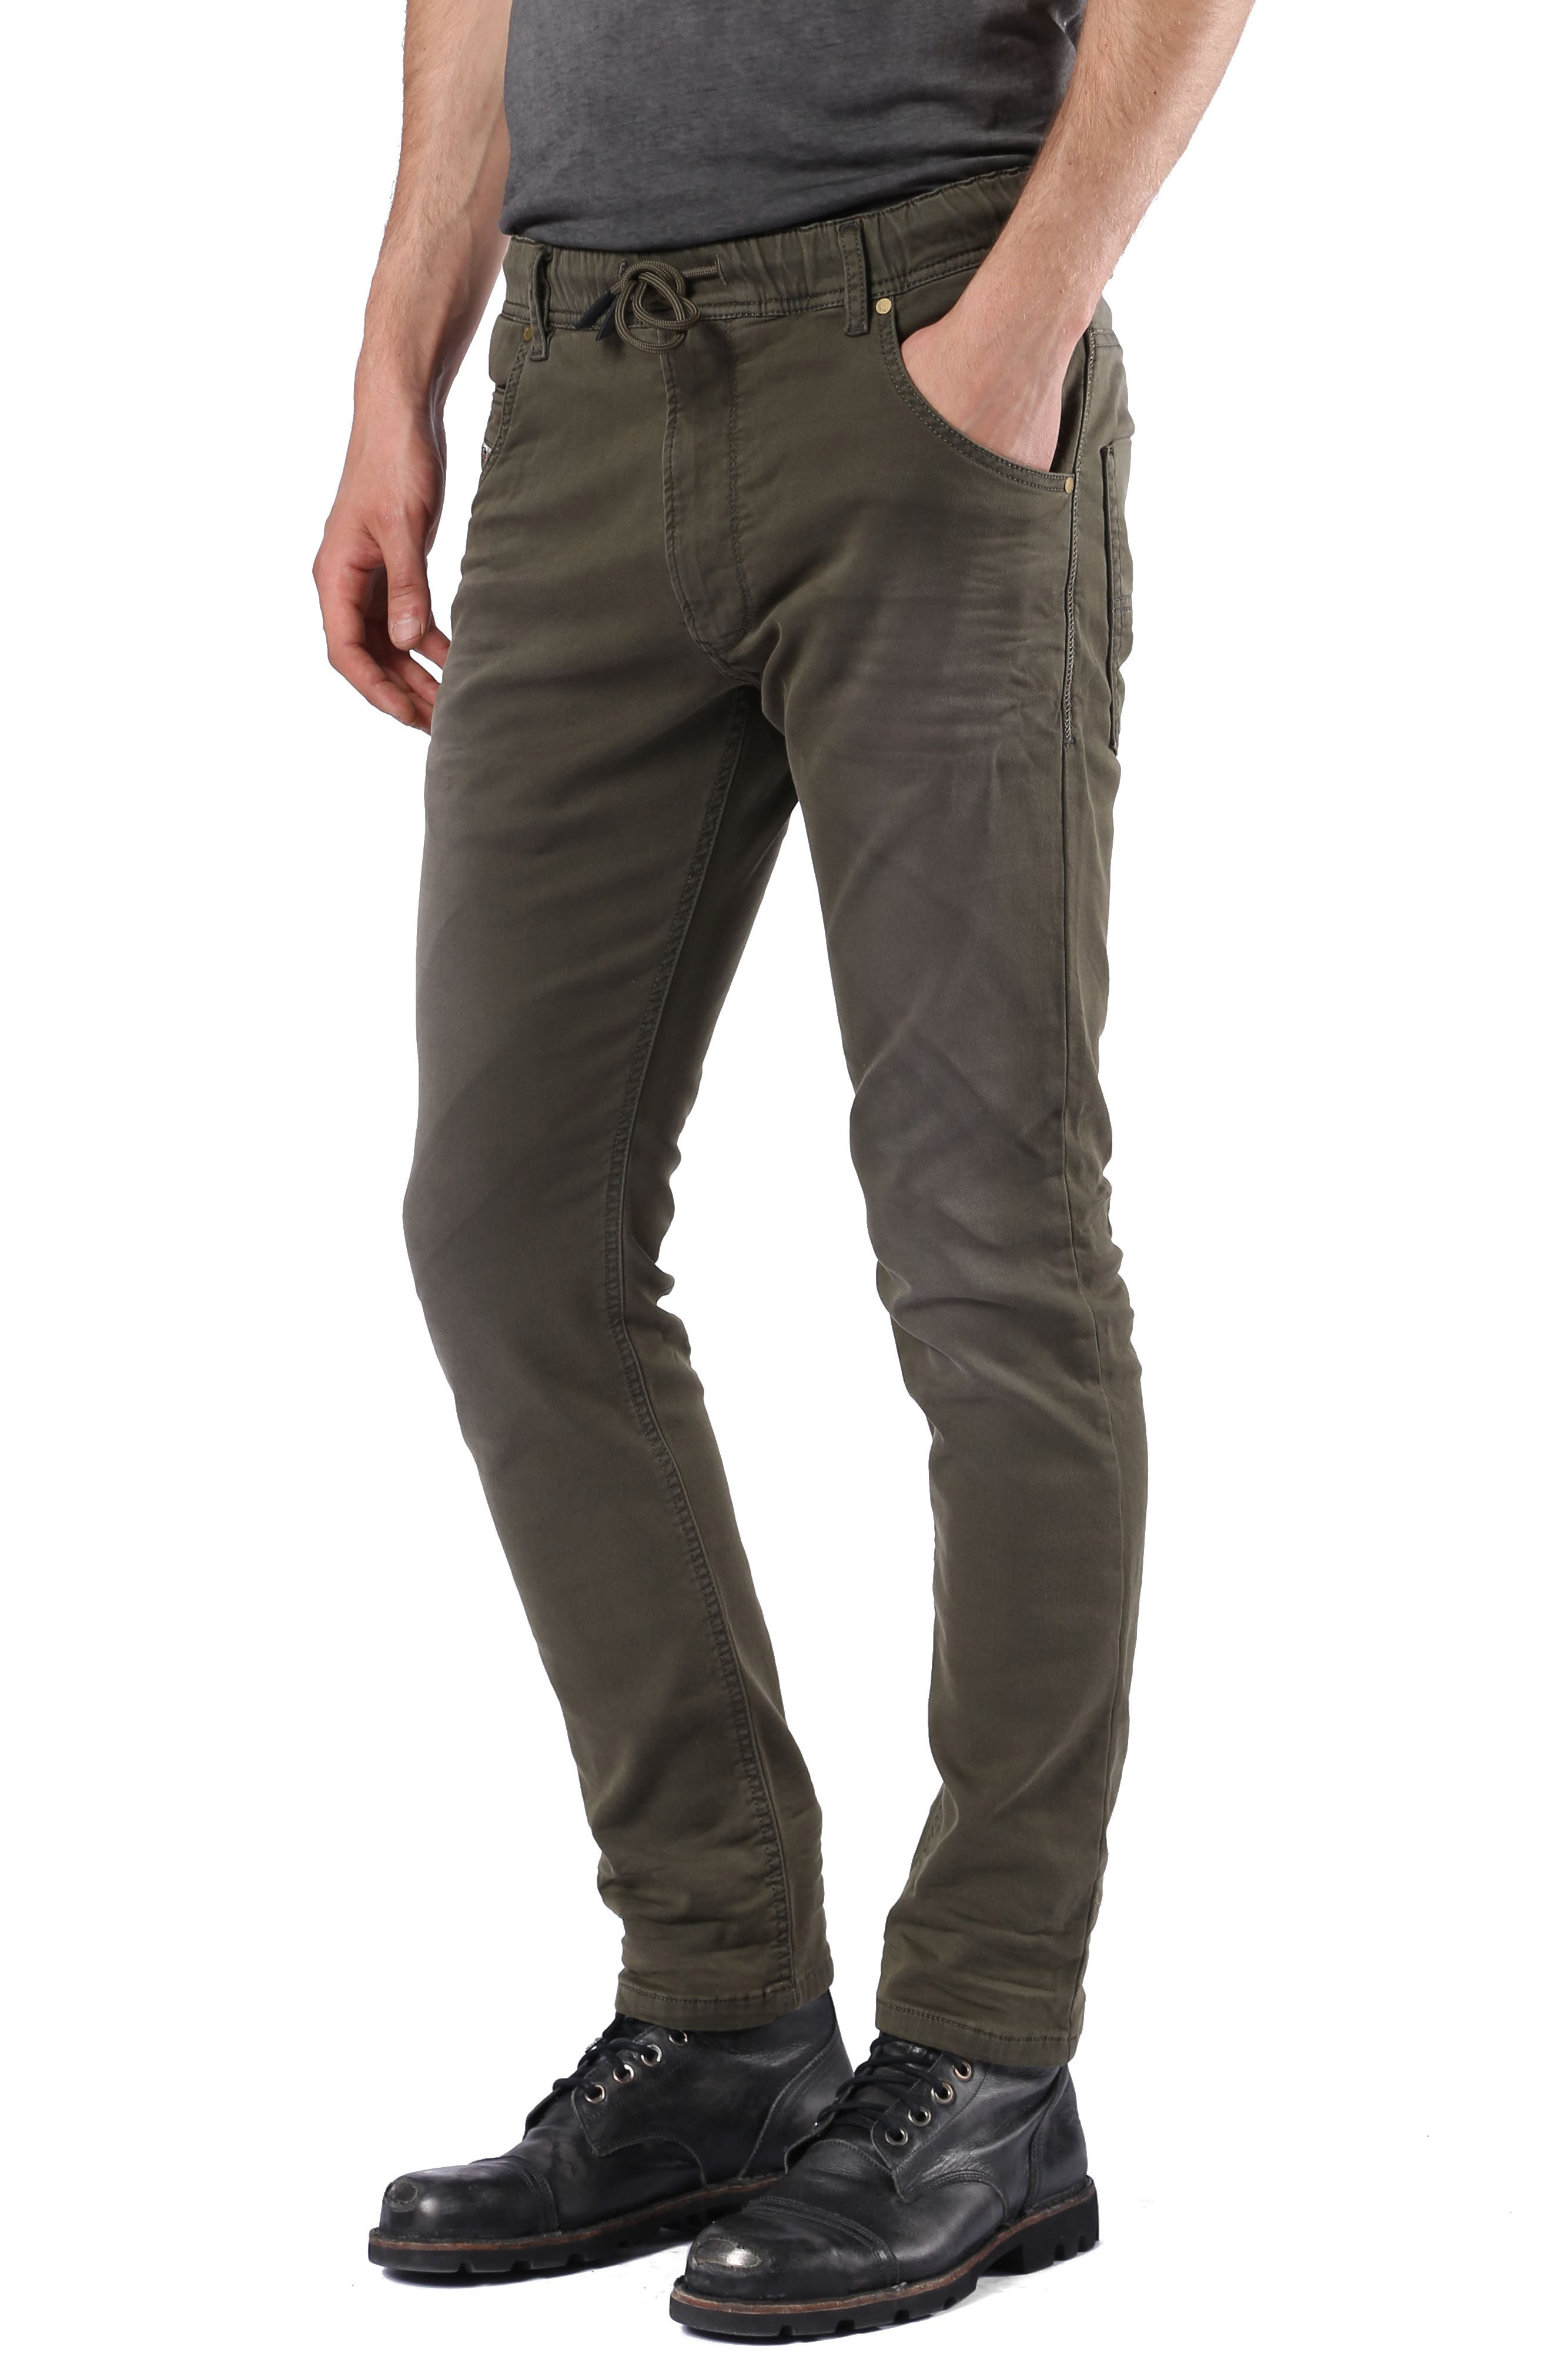 Krooley Slouchy Skinny Fit Jeans,                             Alternate thumbnail 3, color,                             0670M